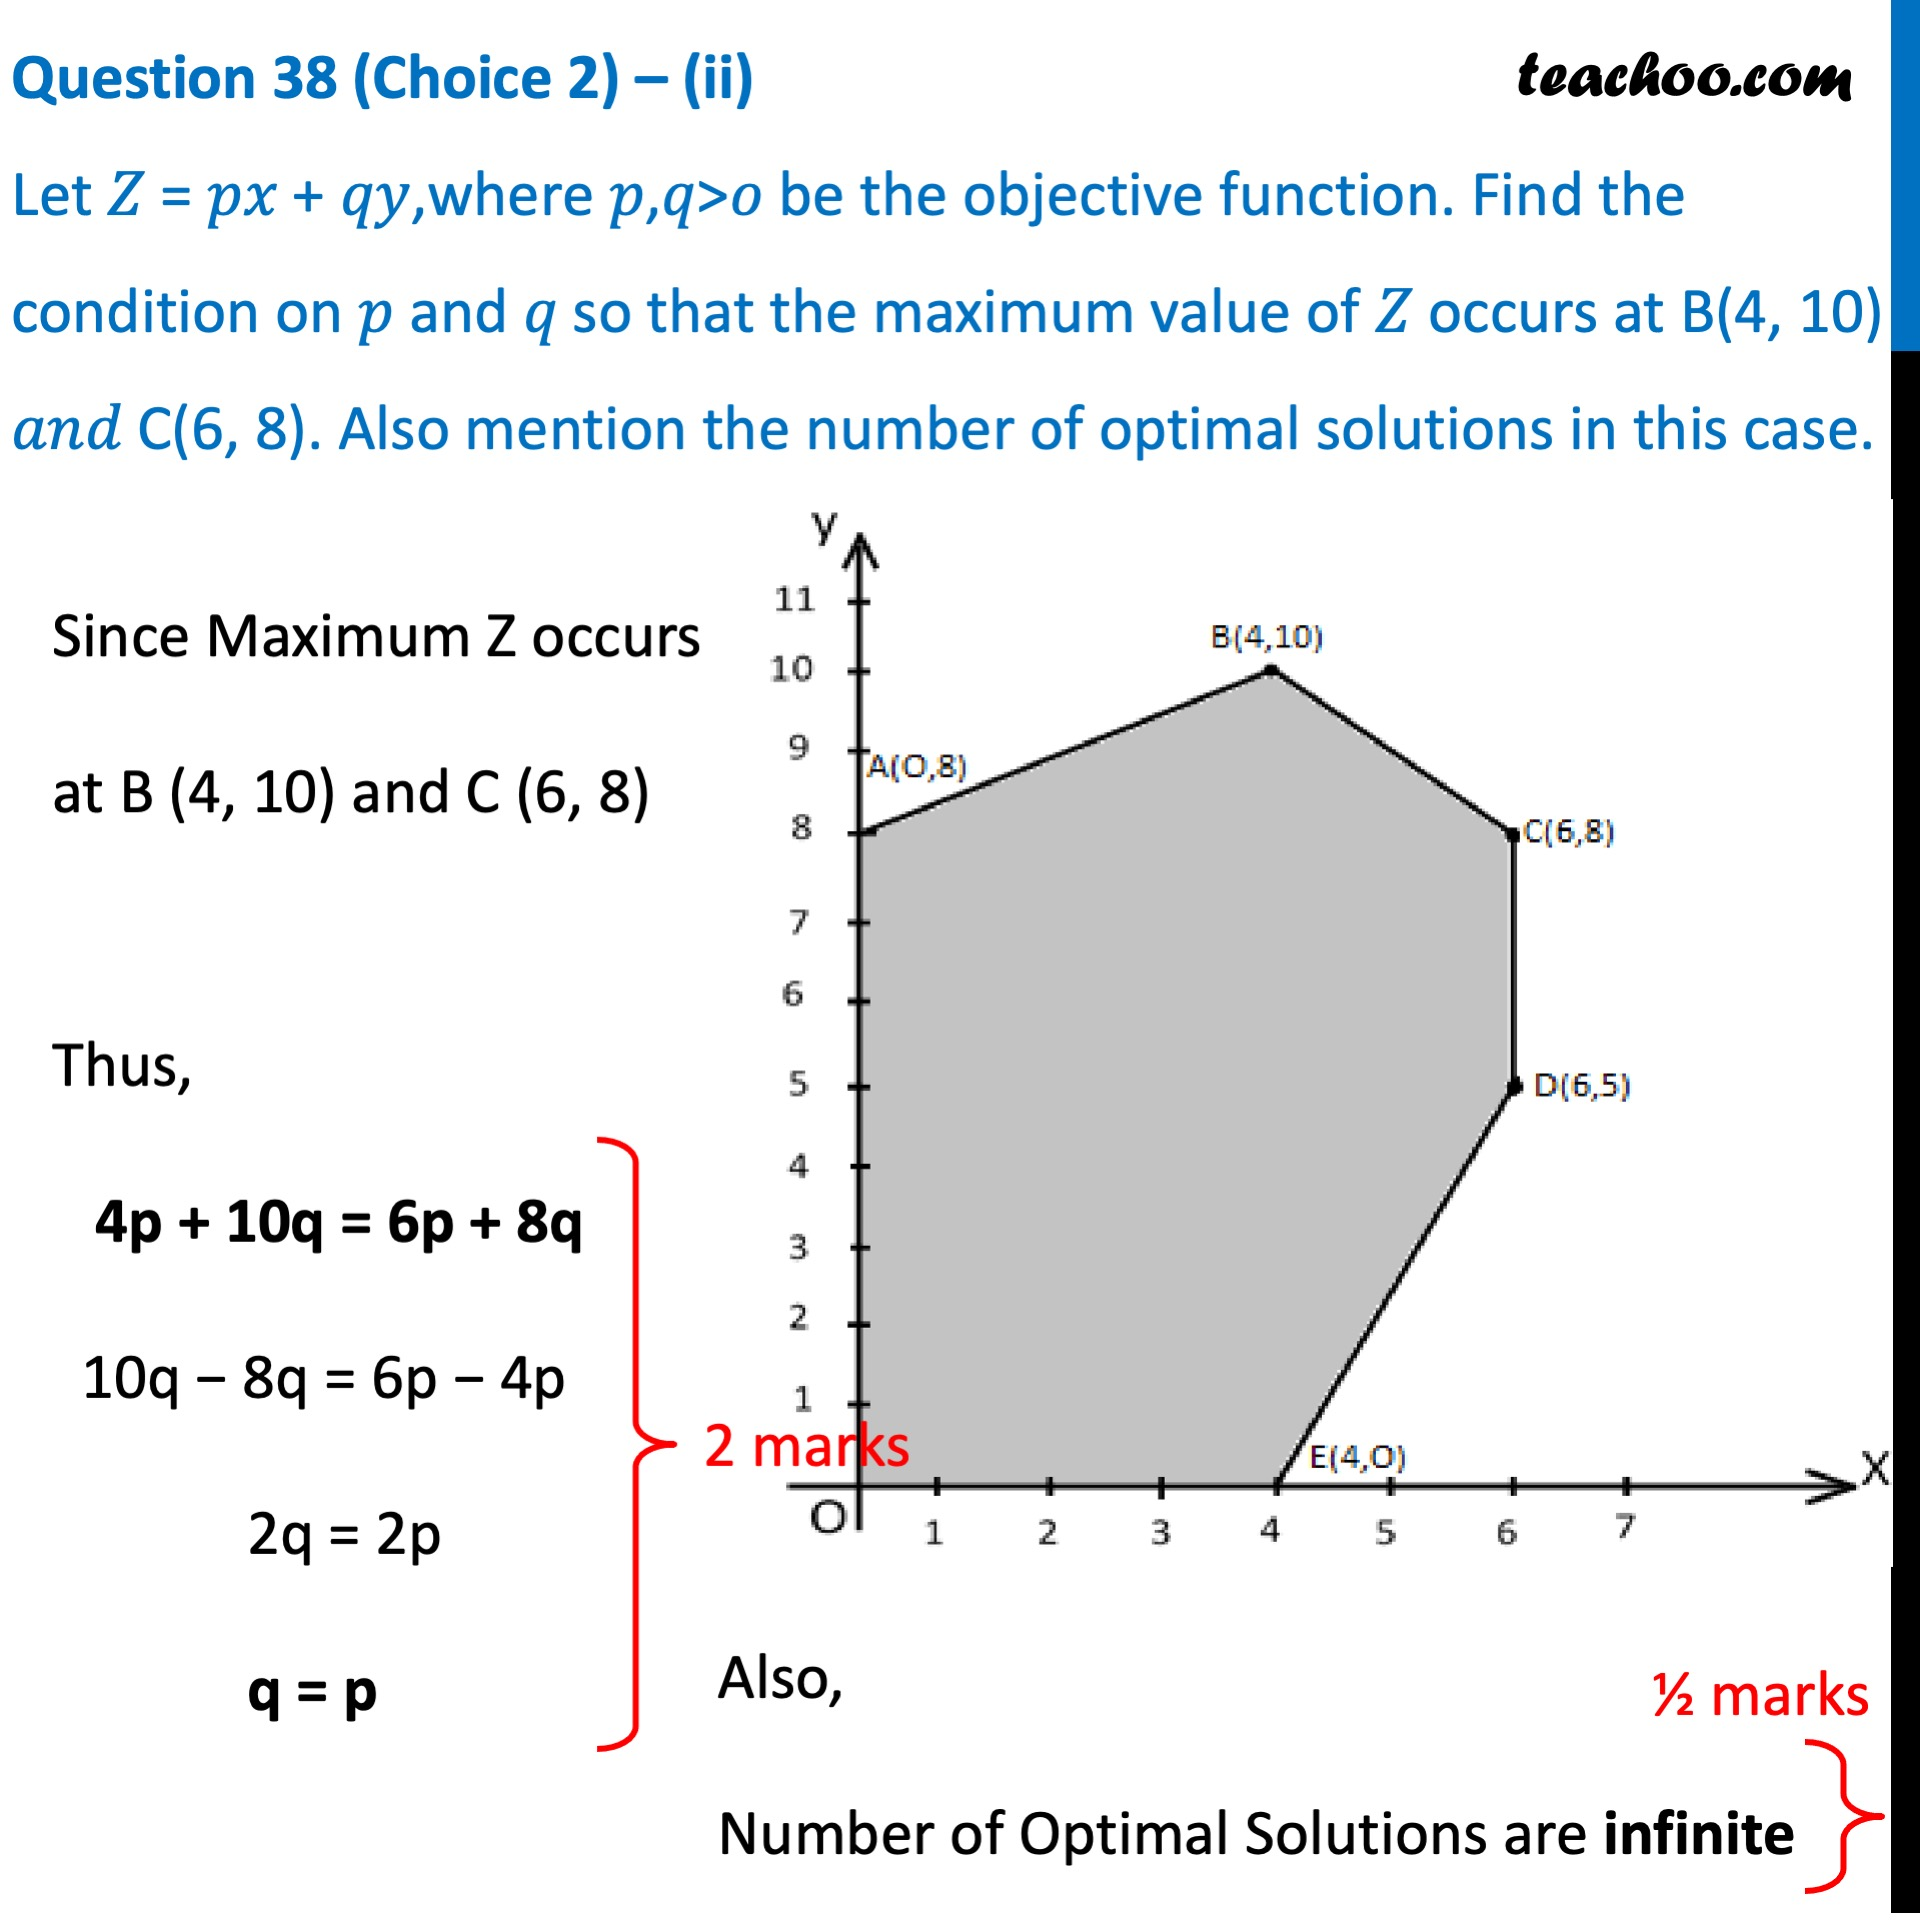 Question 38 (Choice 2) - CBSE Class 12 Sample Paper for 2021 Boards - Part 3